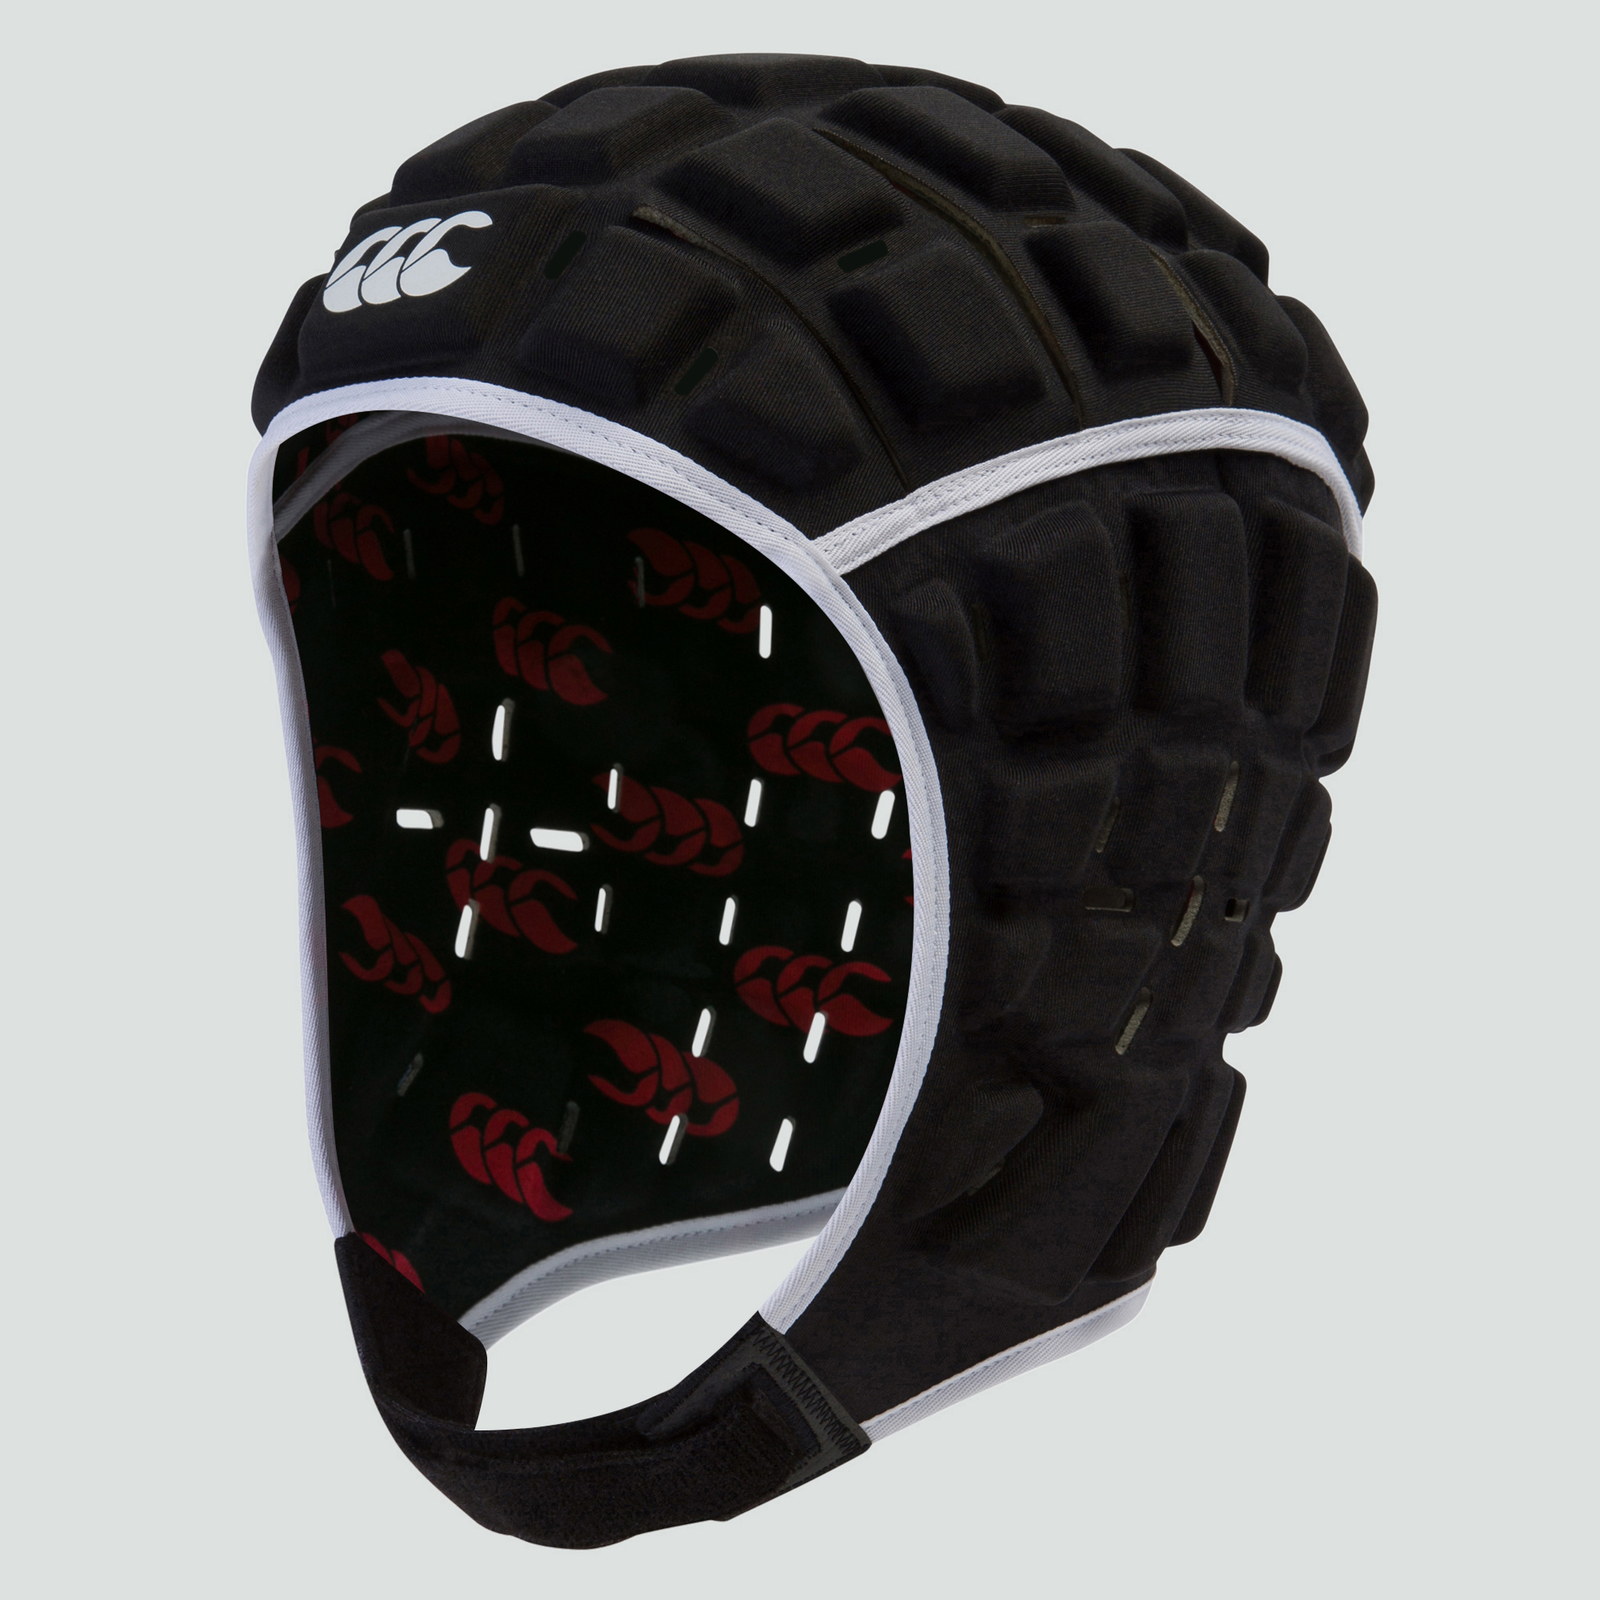 Reinforcer Headguard Adults- Small (Black) image